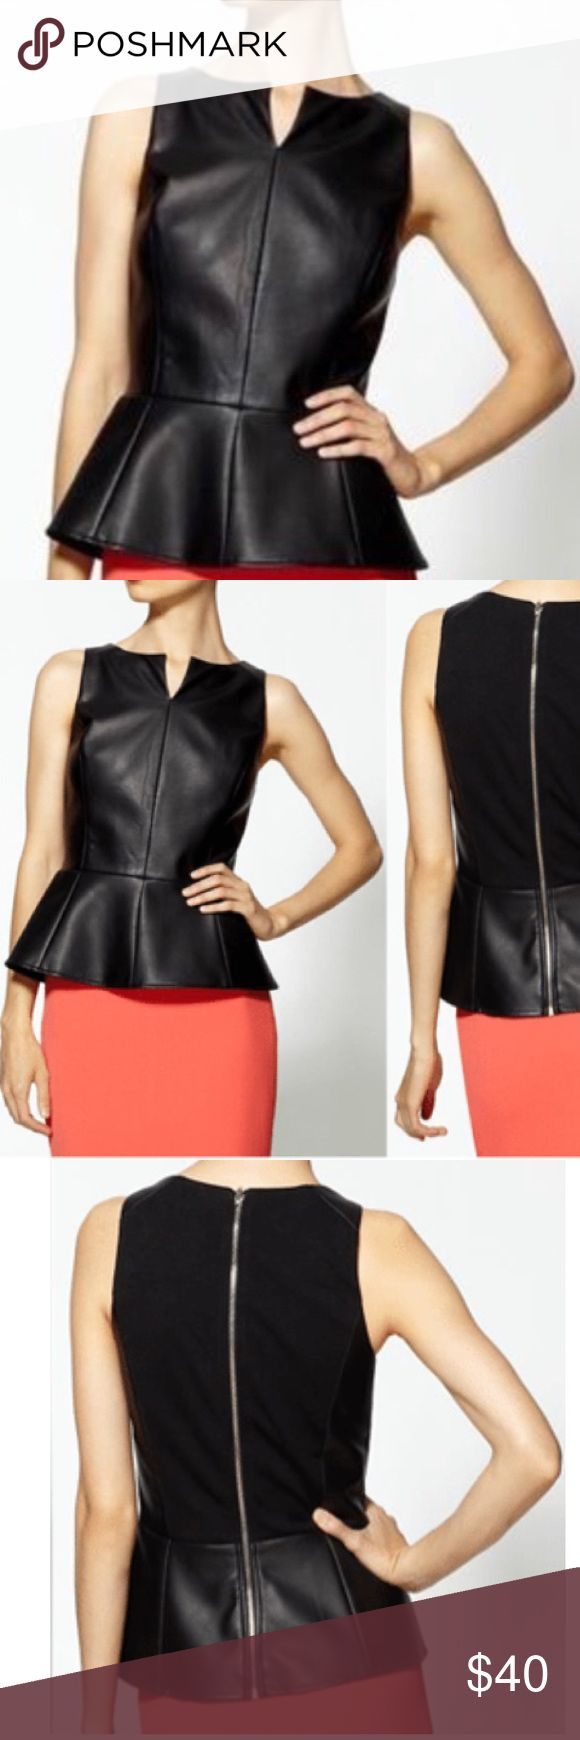 ♥️ Vegan Leather Peplum Top! This flattering super chic Tinley Road peplum top is the perfect compliment to any skirt or pant. It has a zip closure in the back, contrast fabric in the back that is a spandex blend and fully lined, size is true to fit XS. Retailed for $95. Tops